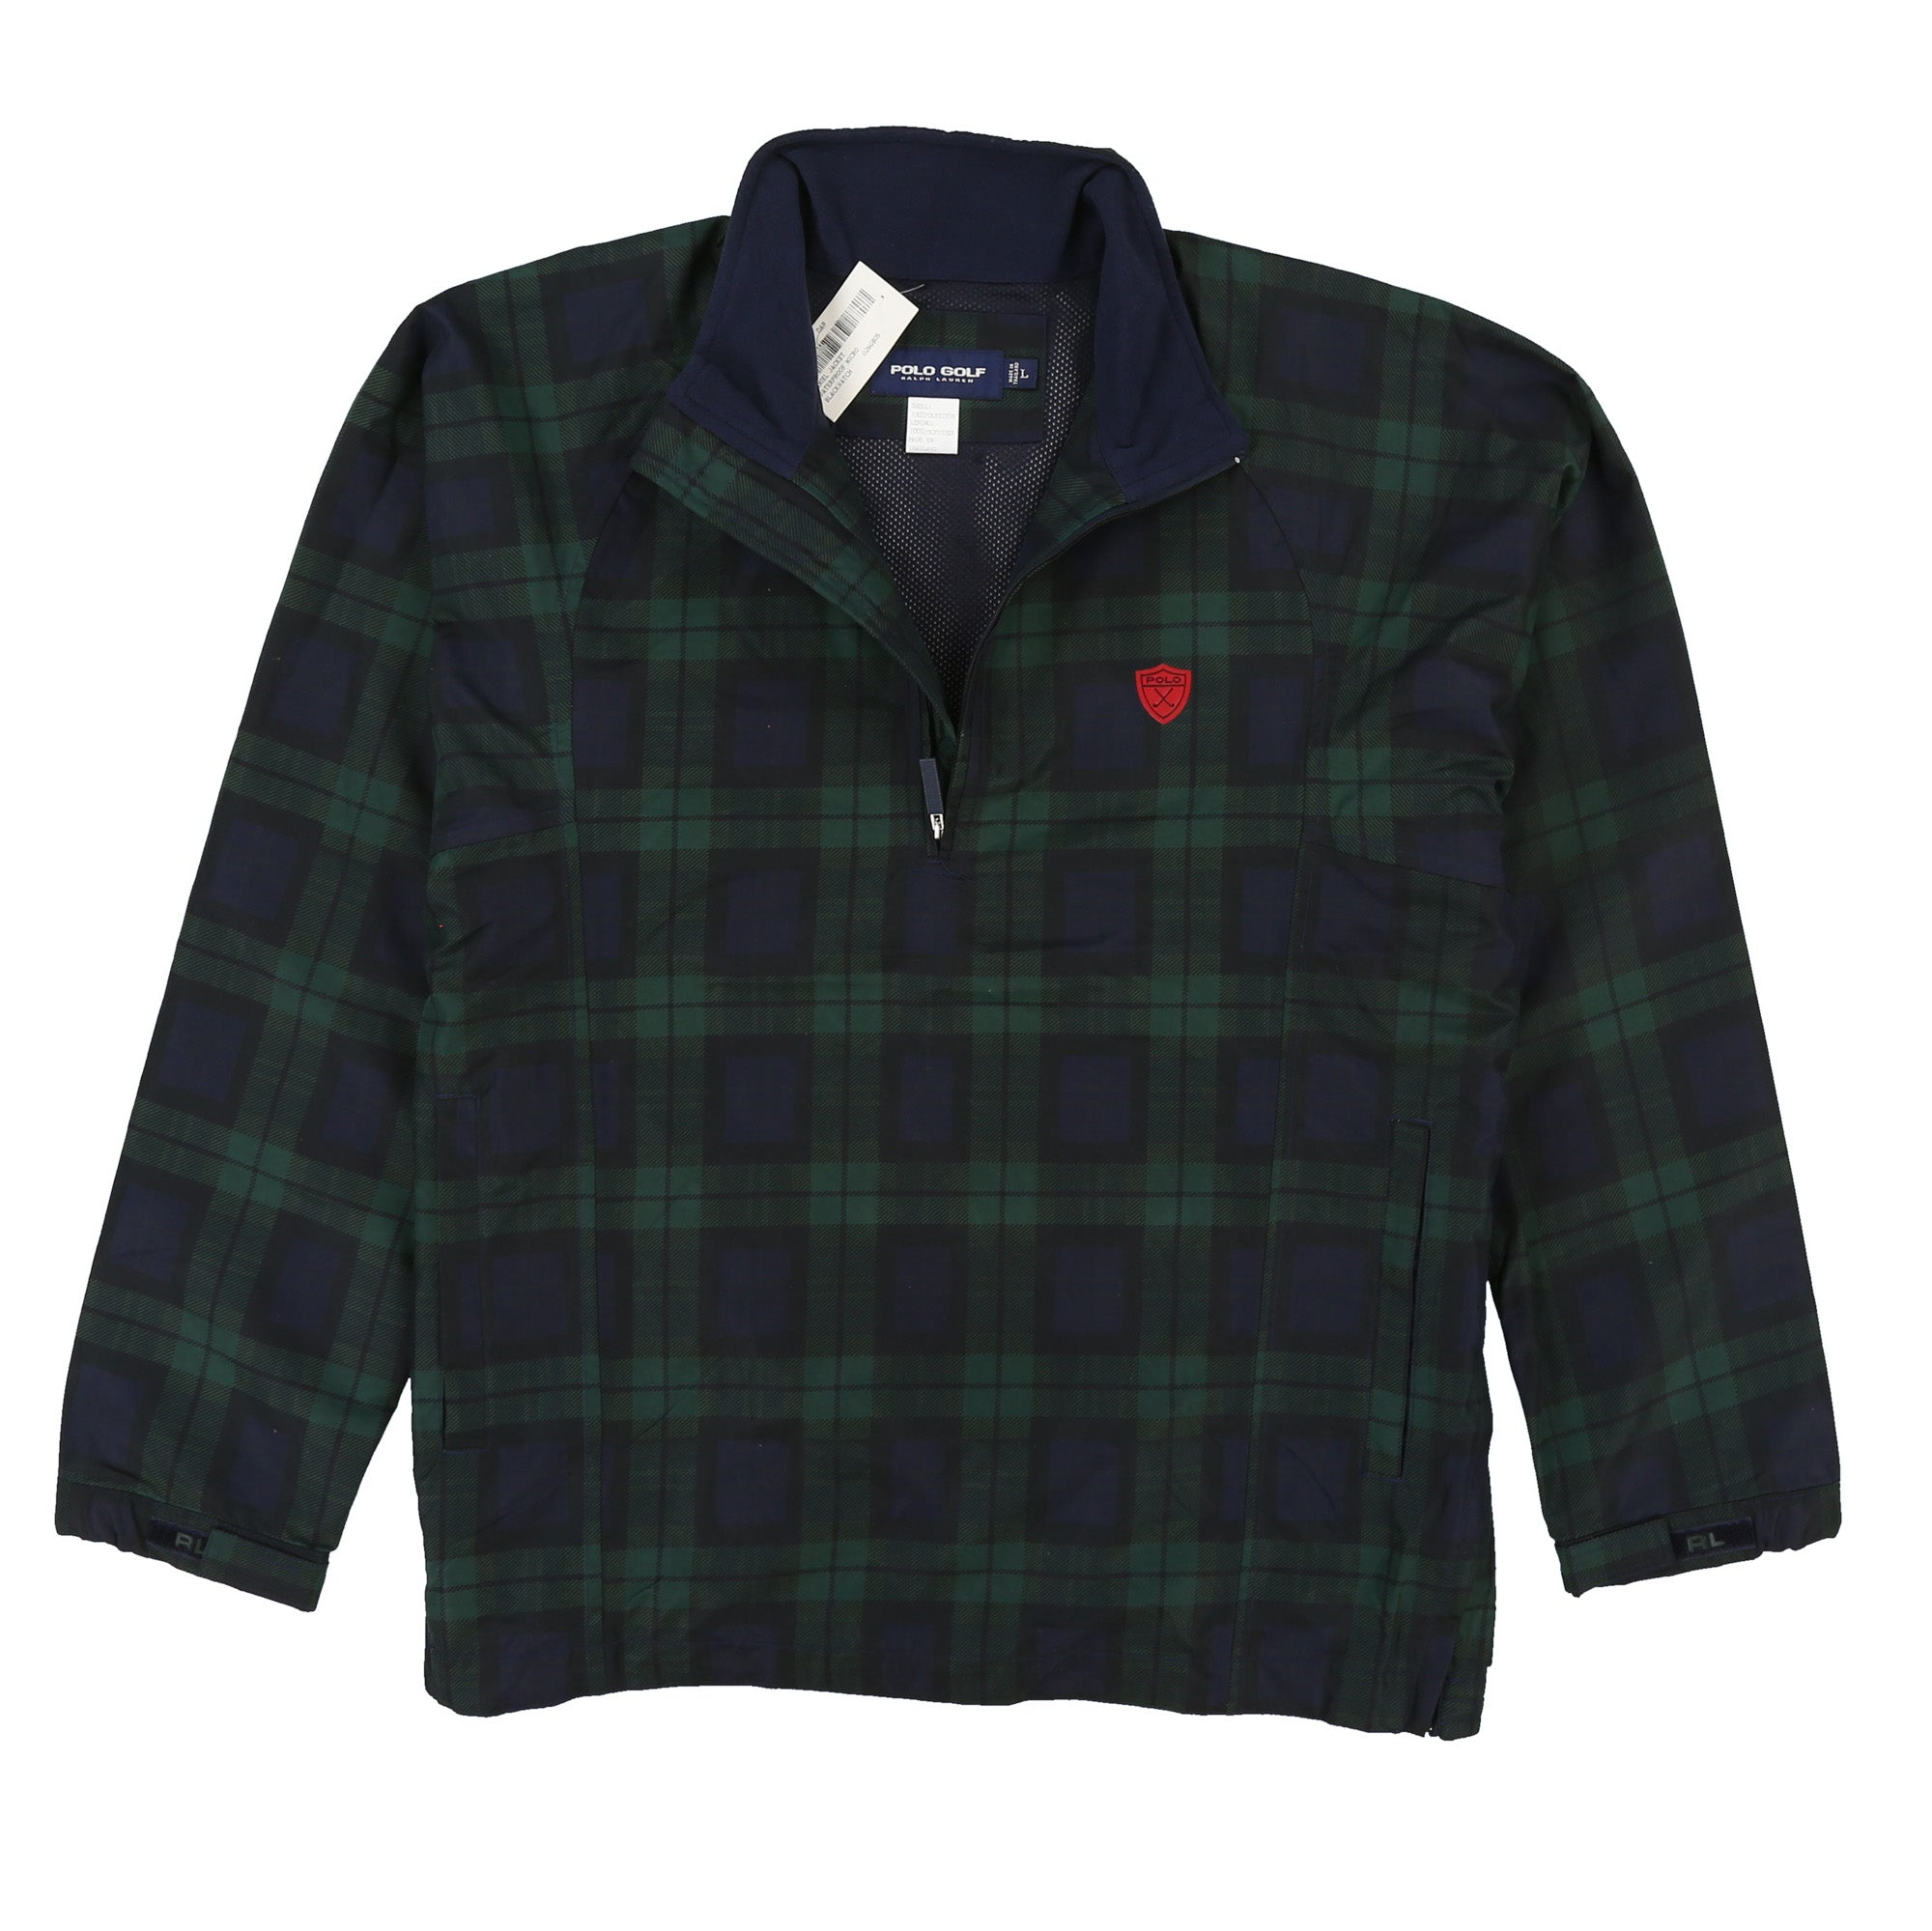 POLO GOLF DANIEL JACKET // BLACKWATCH PLAID